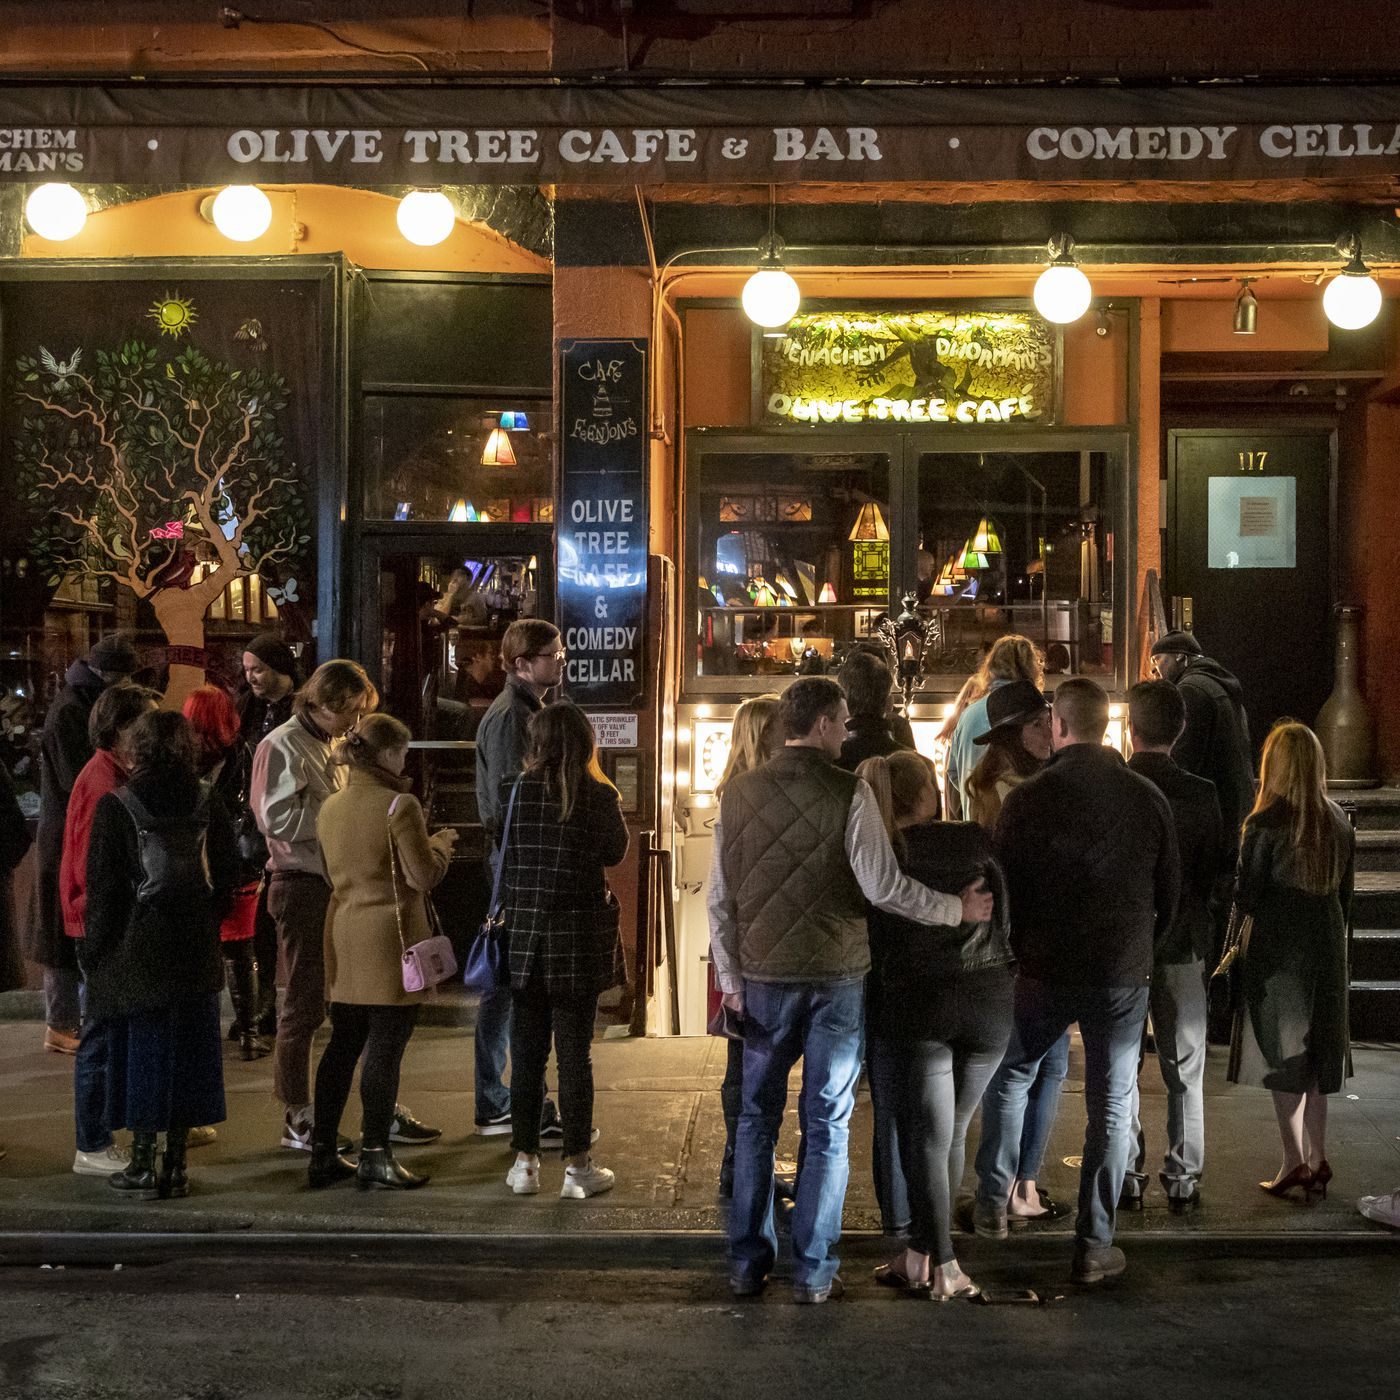 Restaurants and Bars Across the U.S. Face Mandated Closures Due to ...